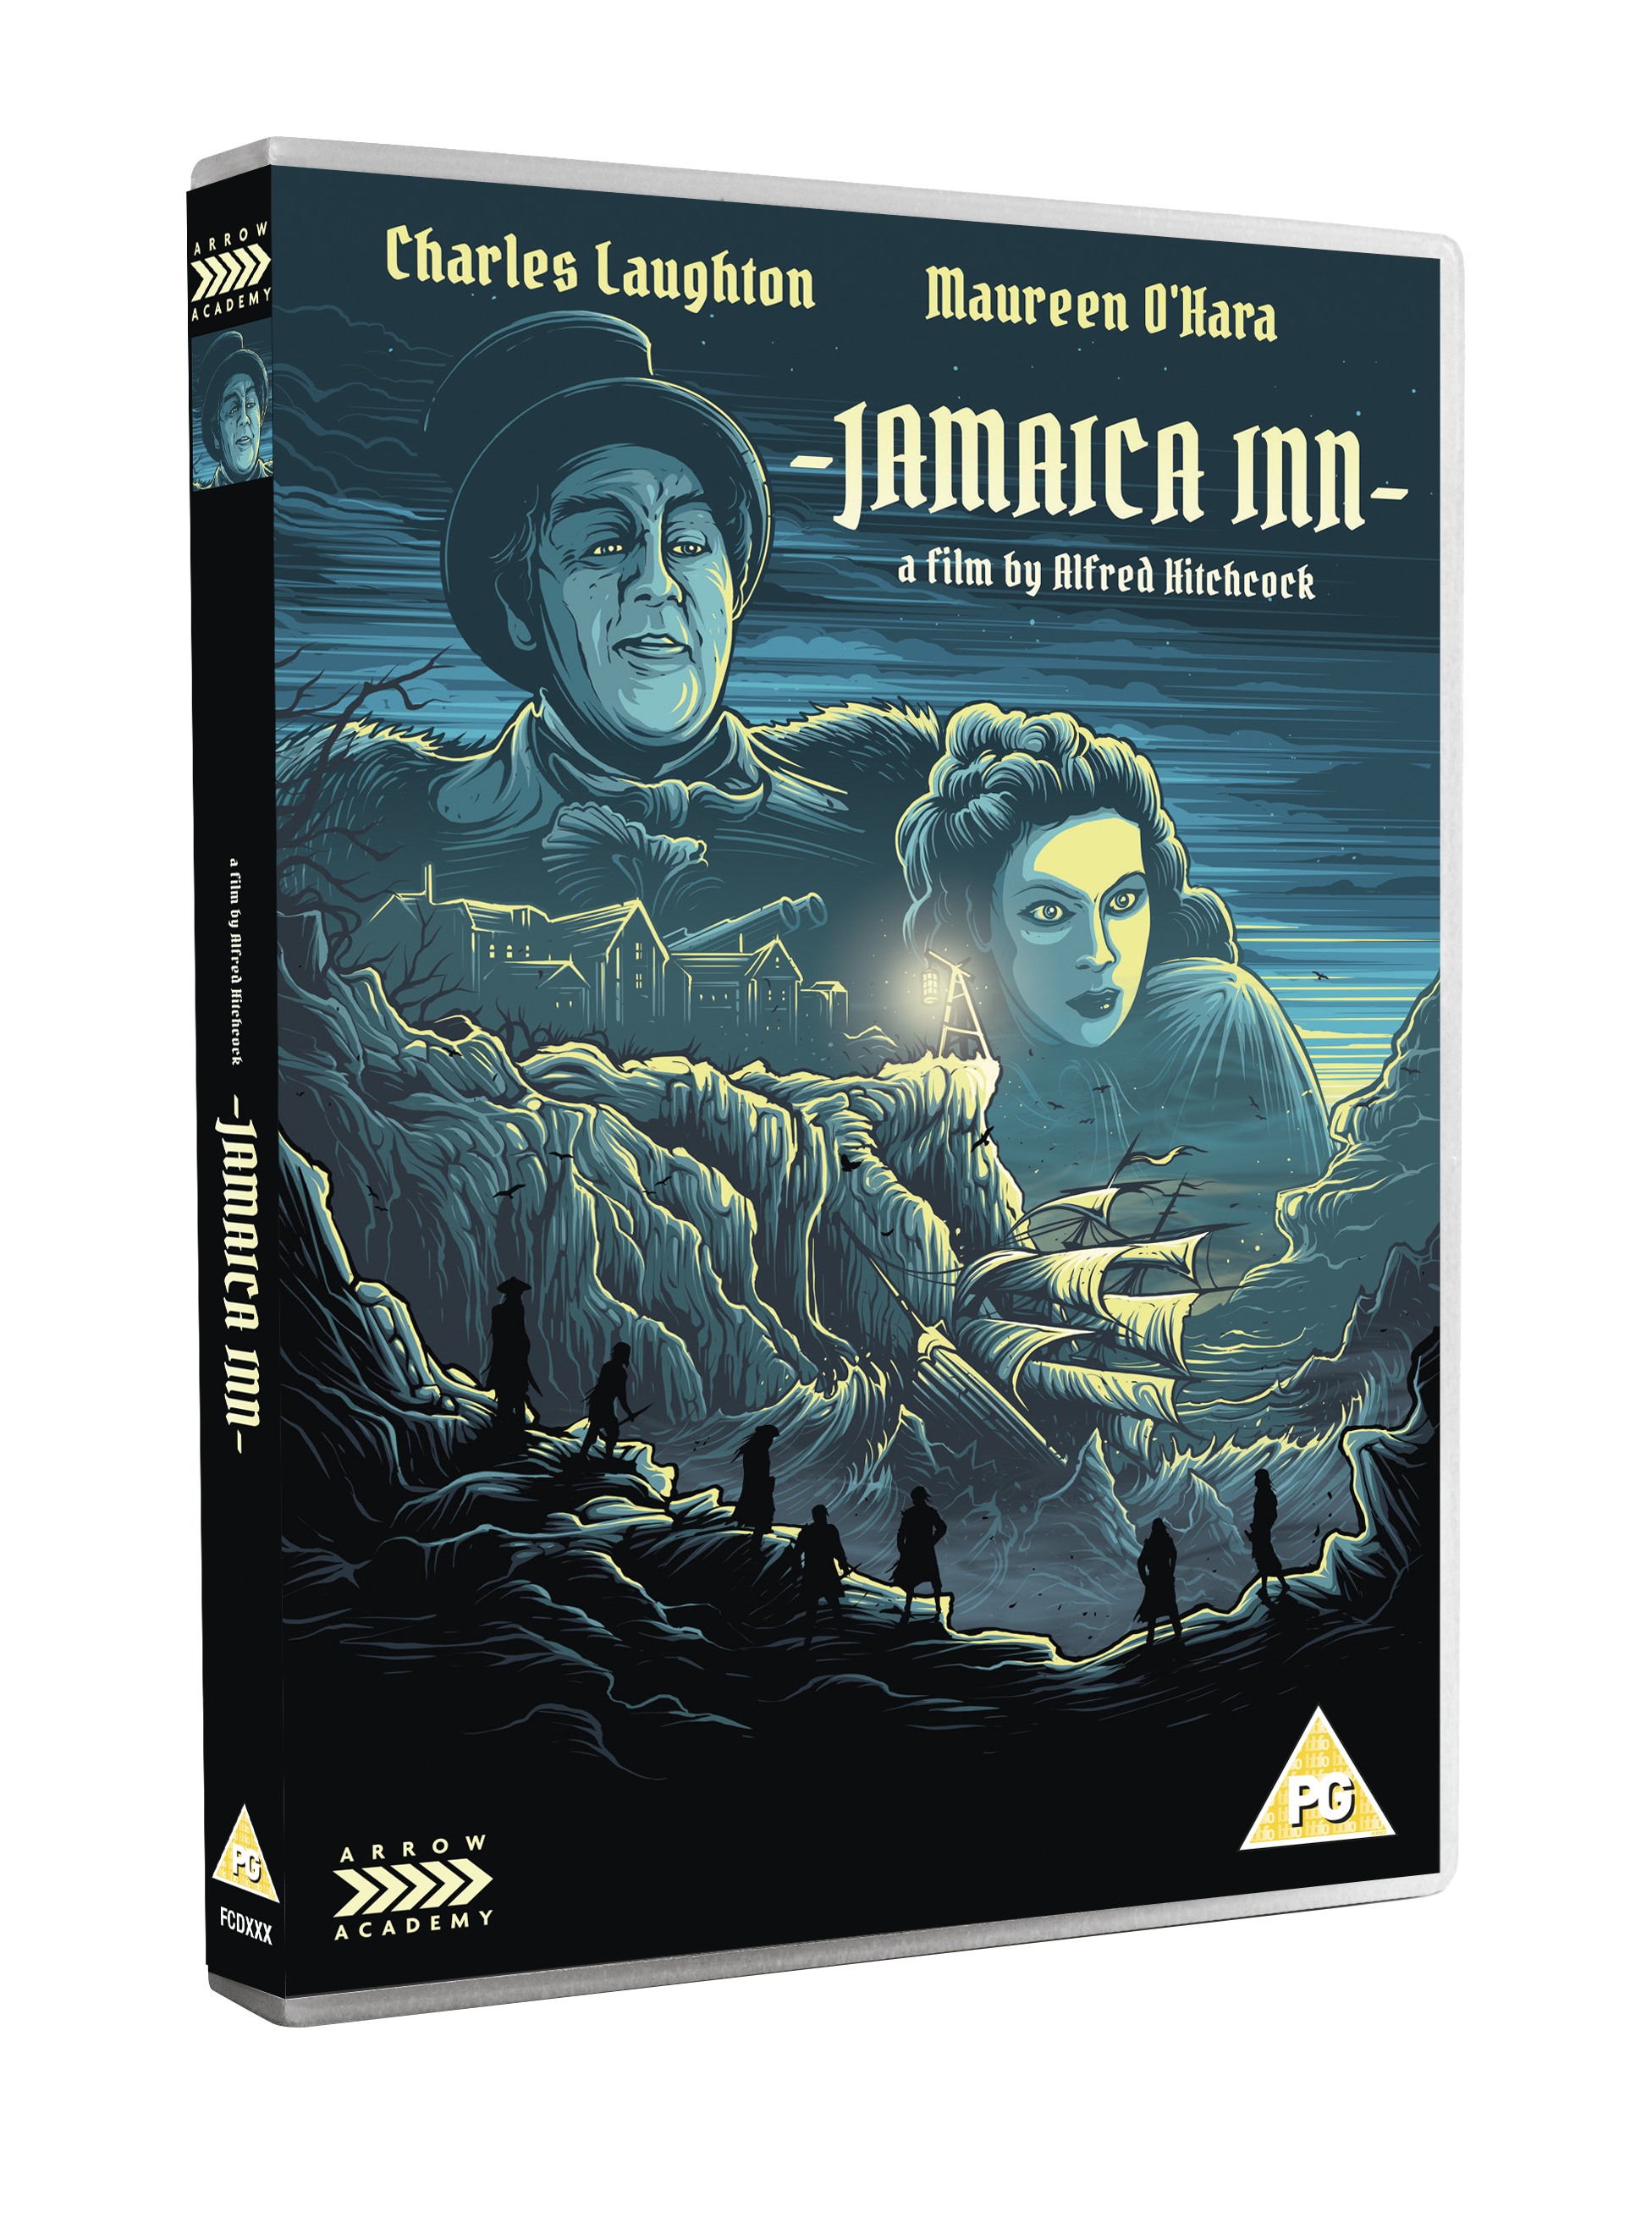 JAMAICA INN 3D DVD Arrow Academy November releases announced